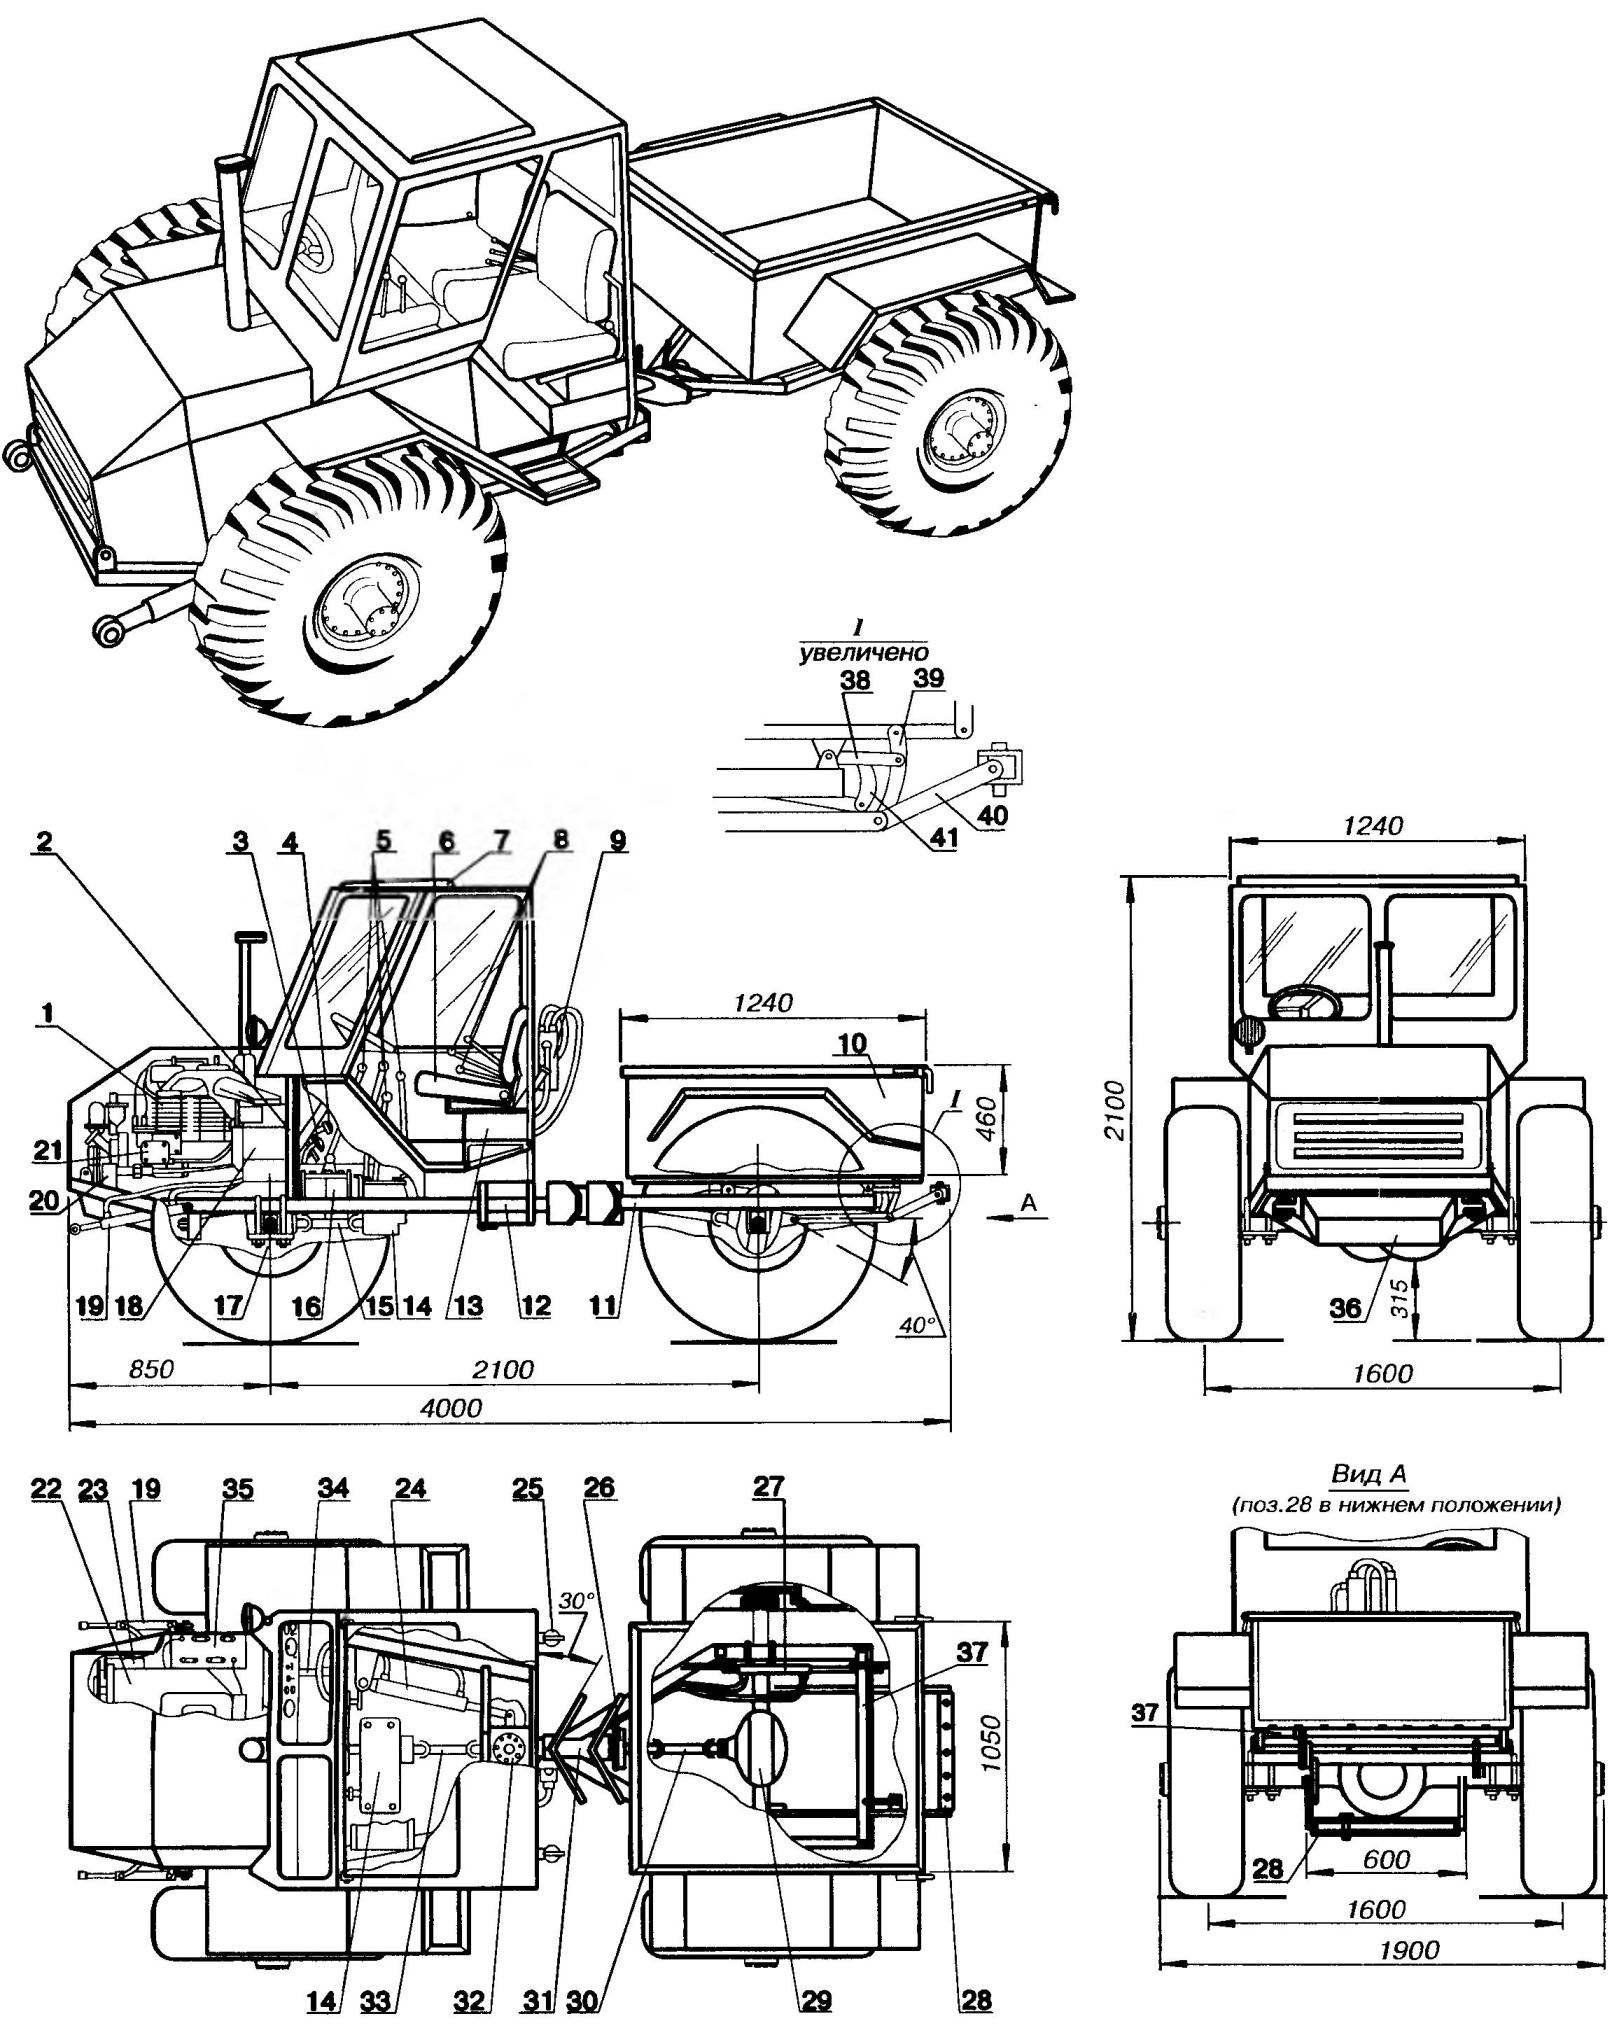 Ural Motorcycle Gear | Wiring Diagram Database on ural parts, ural ignition diagram, ural engine diagram,